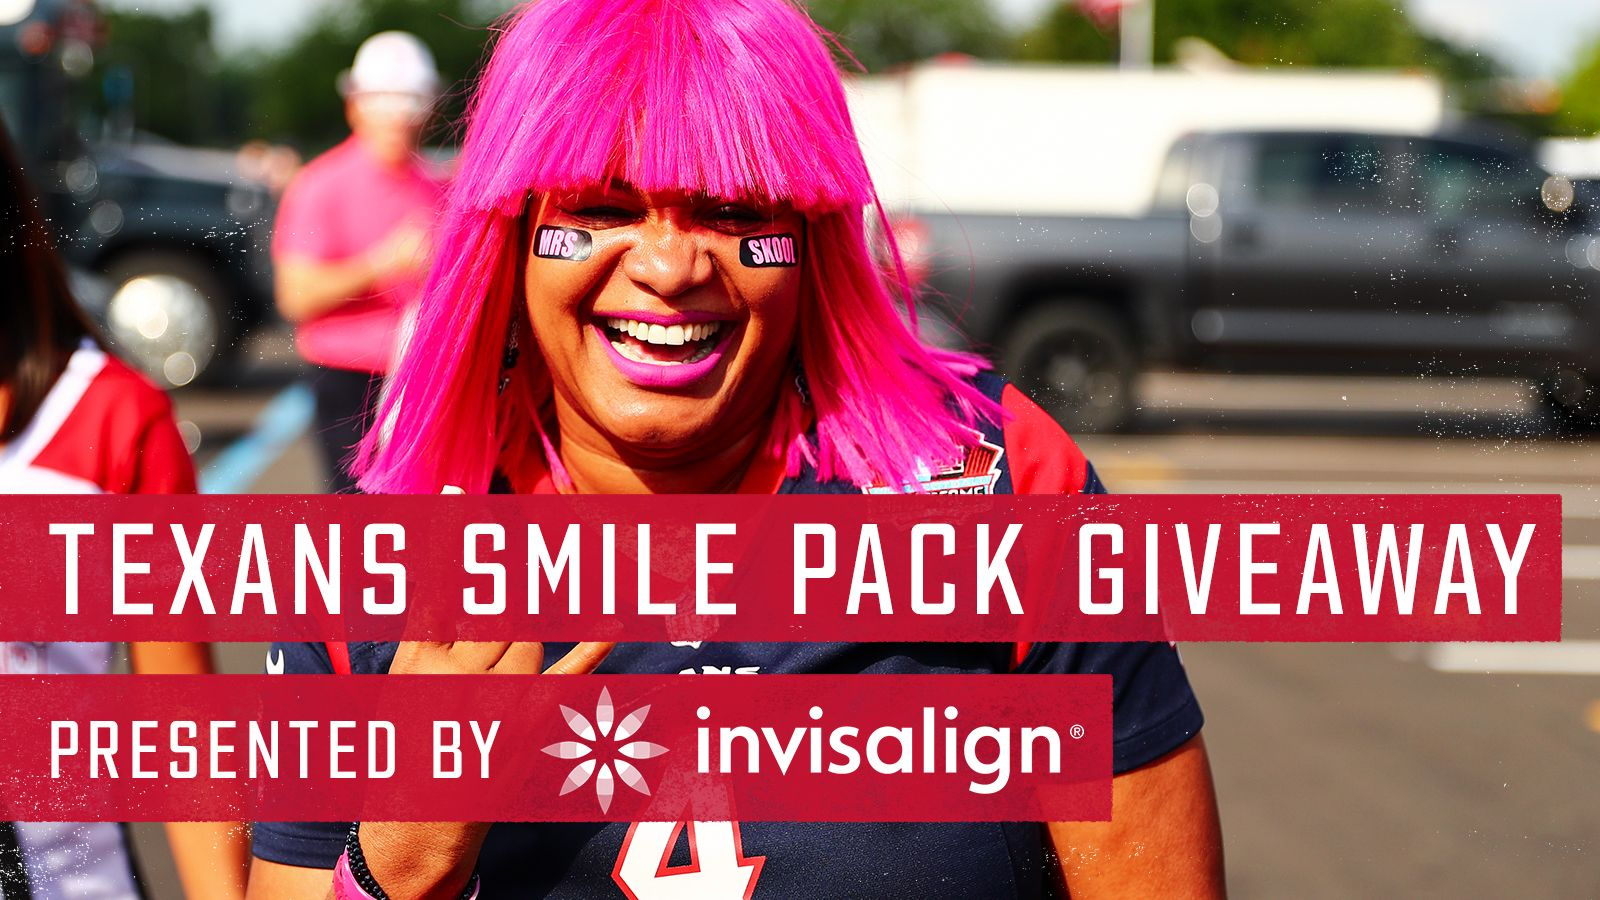 Texans Smile Pack Giveaway presented by Invisalign